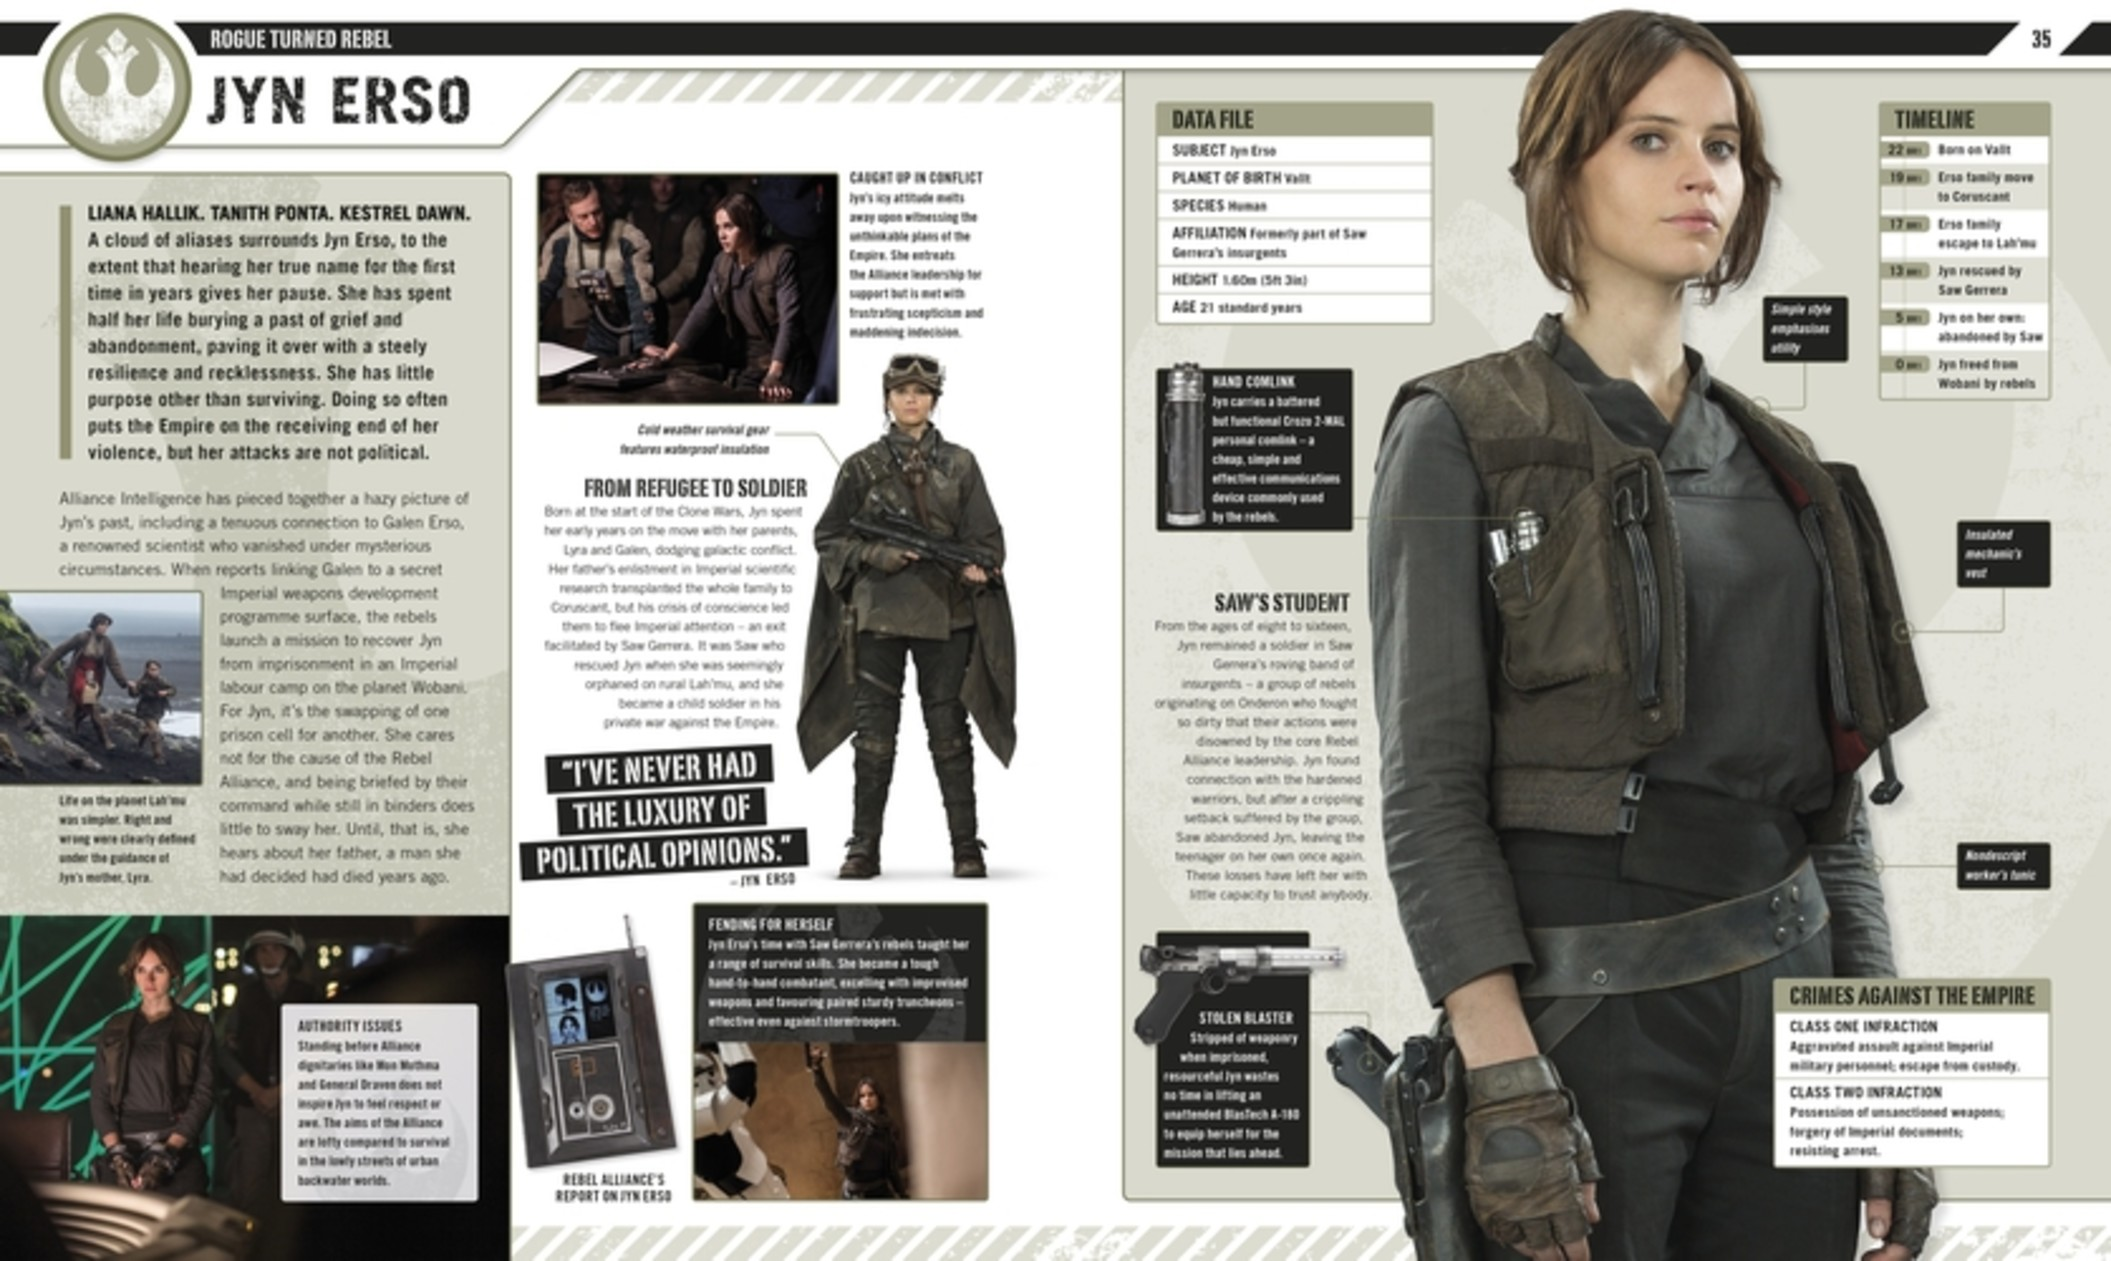 rogue one: the Ultimate Visual Guide Jyn